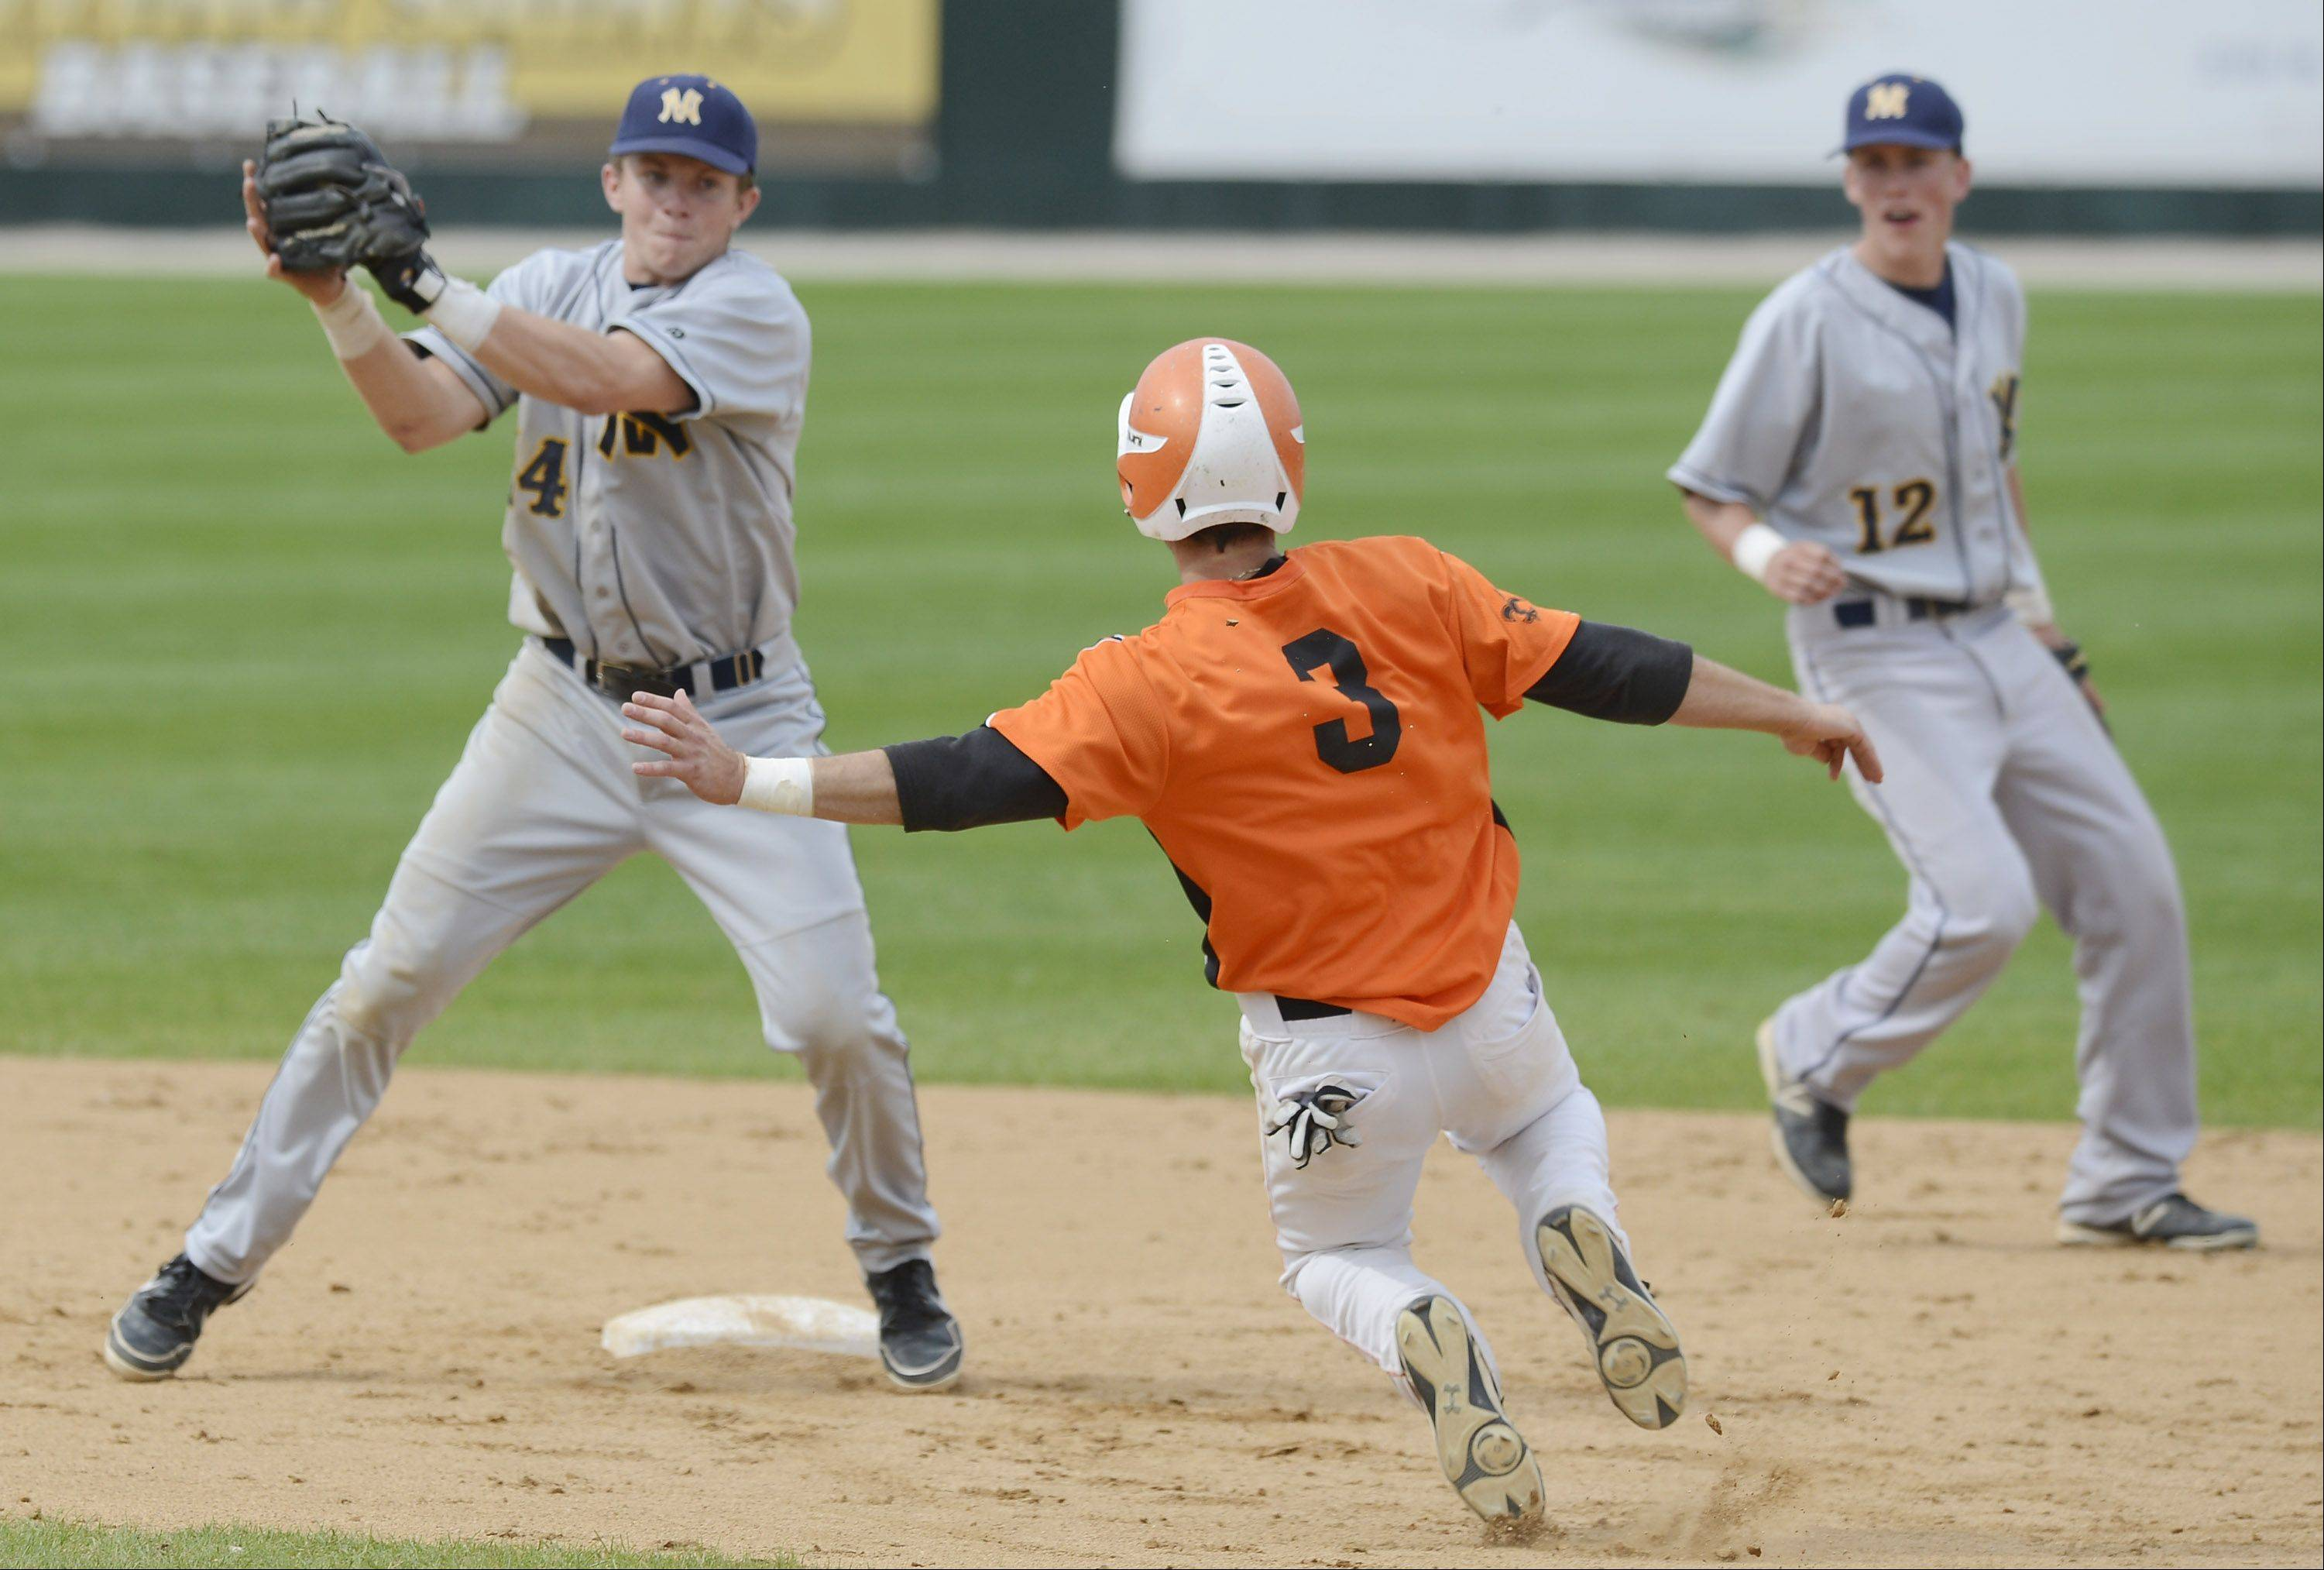 With shortstop Matt Wollnik backing up the play, Neuqua Valley shortstop gets ready to apply the tag on St. Charles East's Jack Dellostritto, who is called safe at second with a steal during the Class 4A state baseball third-place game at Silver Cross Field in Joliet Saturday.